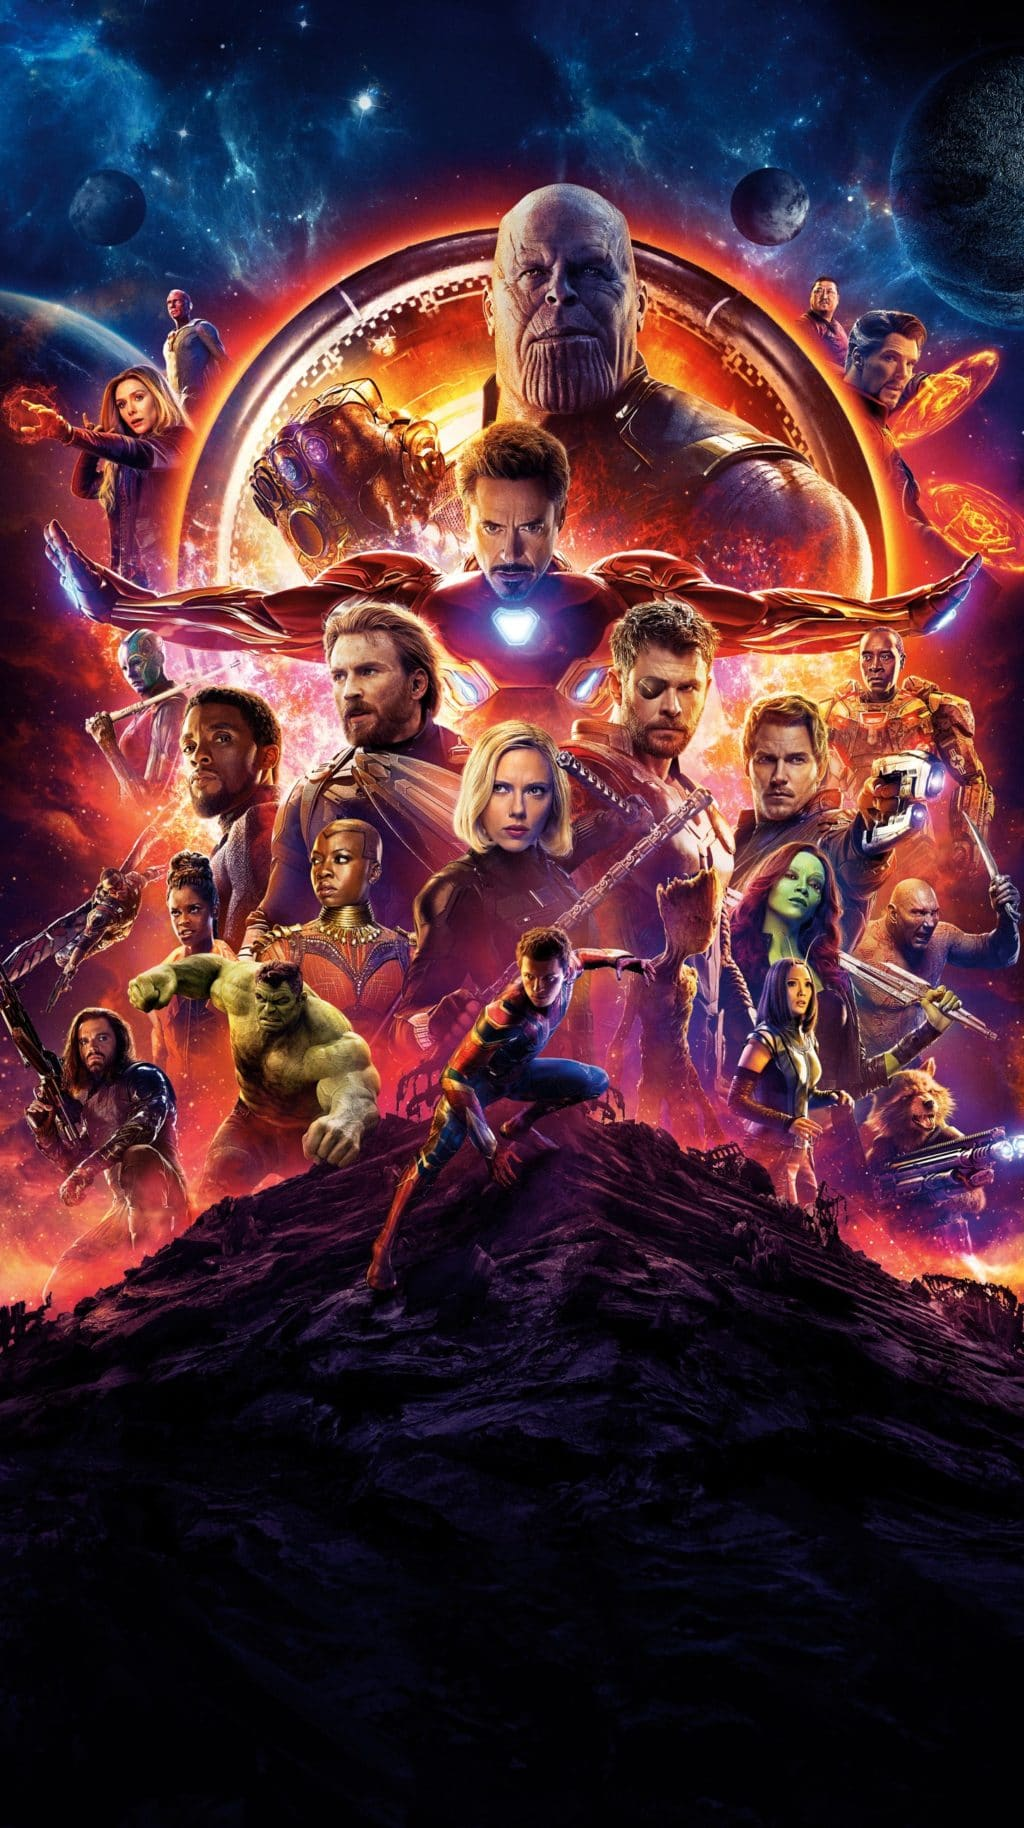 Wallpaper Wednesday Avengers Infinity War Themed Wallpapers For Iphone